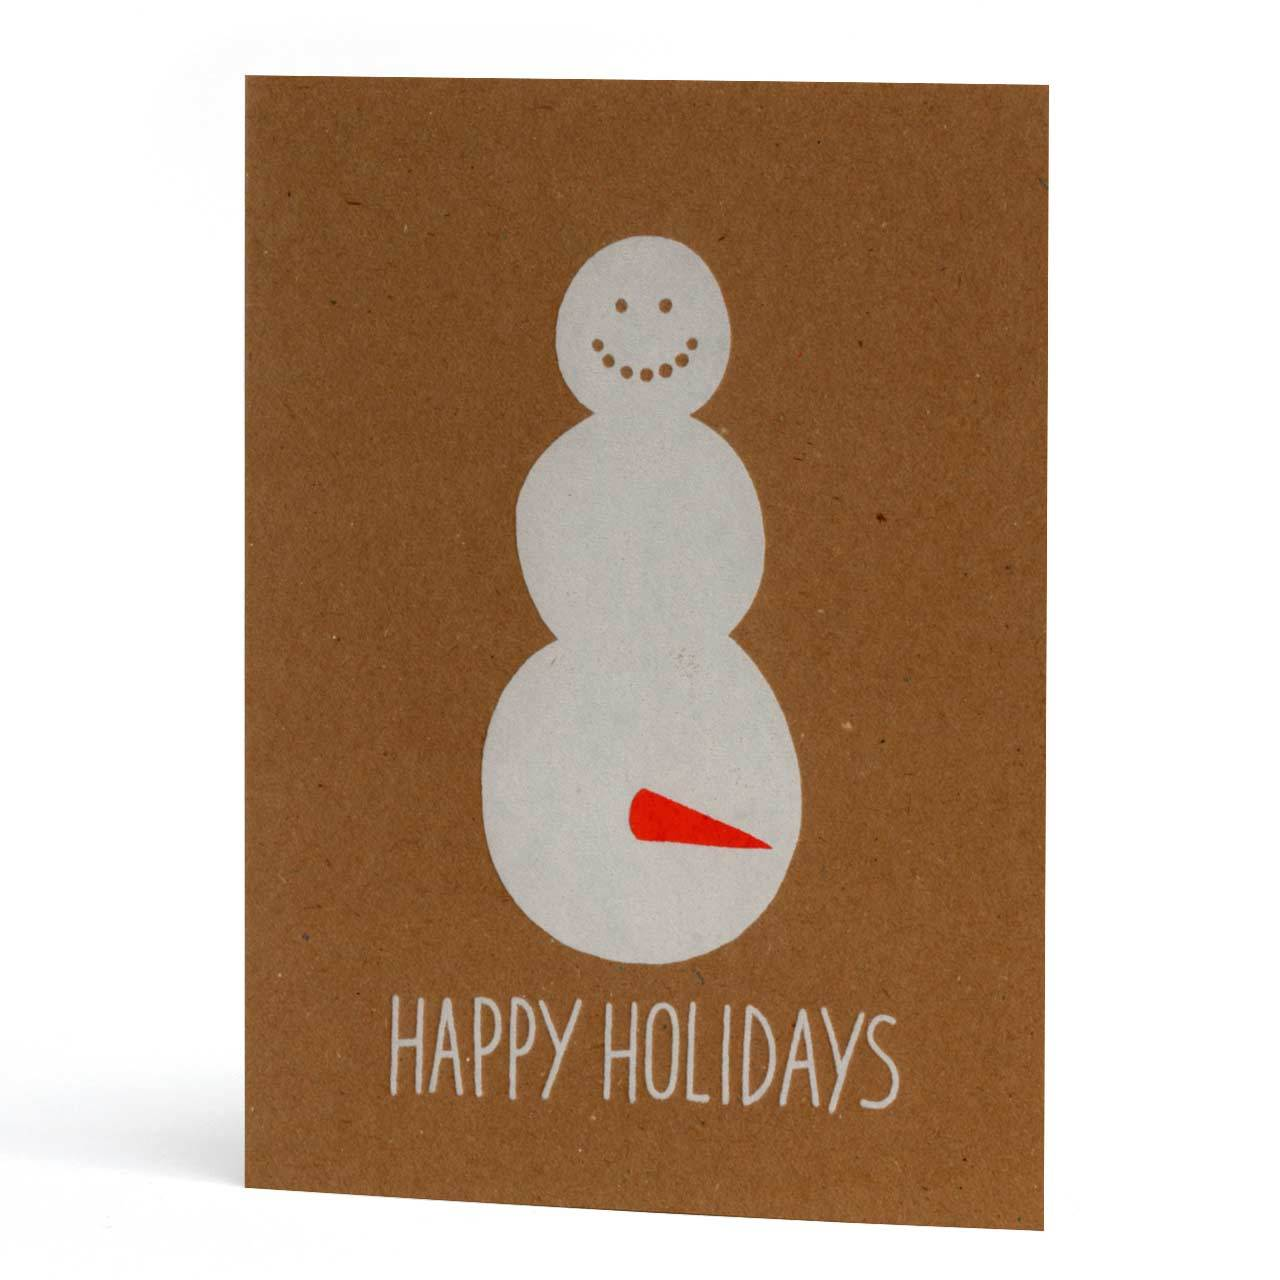 Happy Holidays Snowman Letterpress Greeting Card